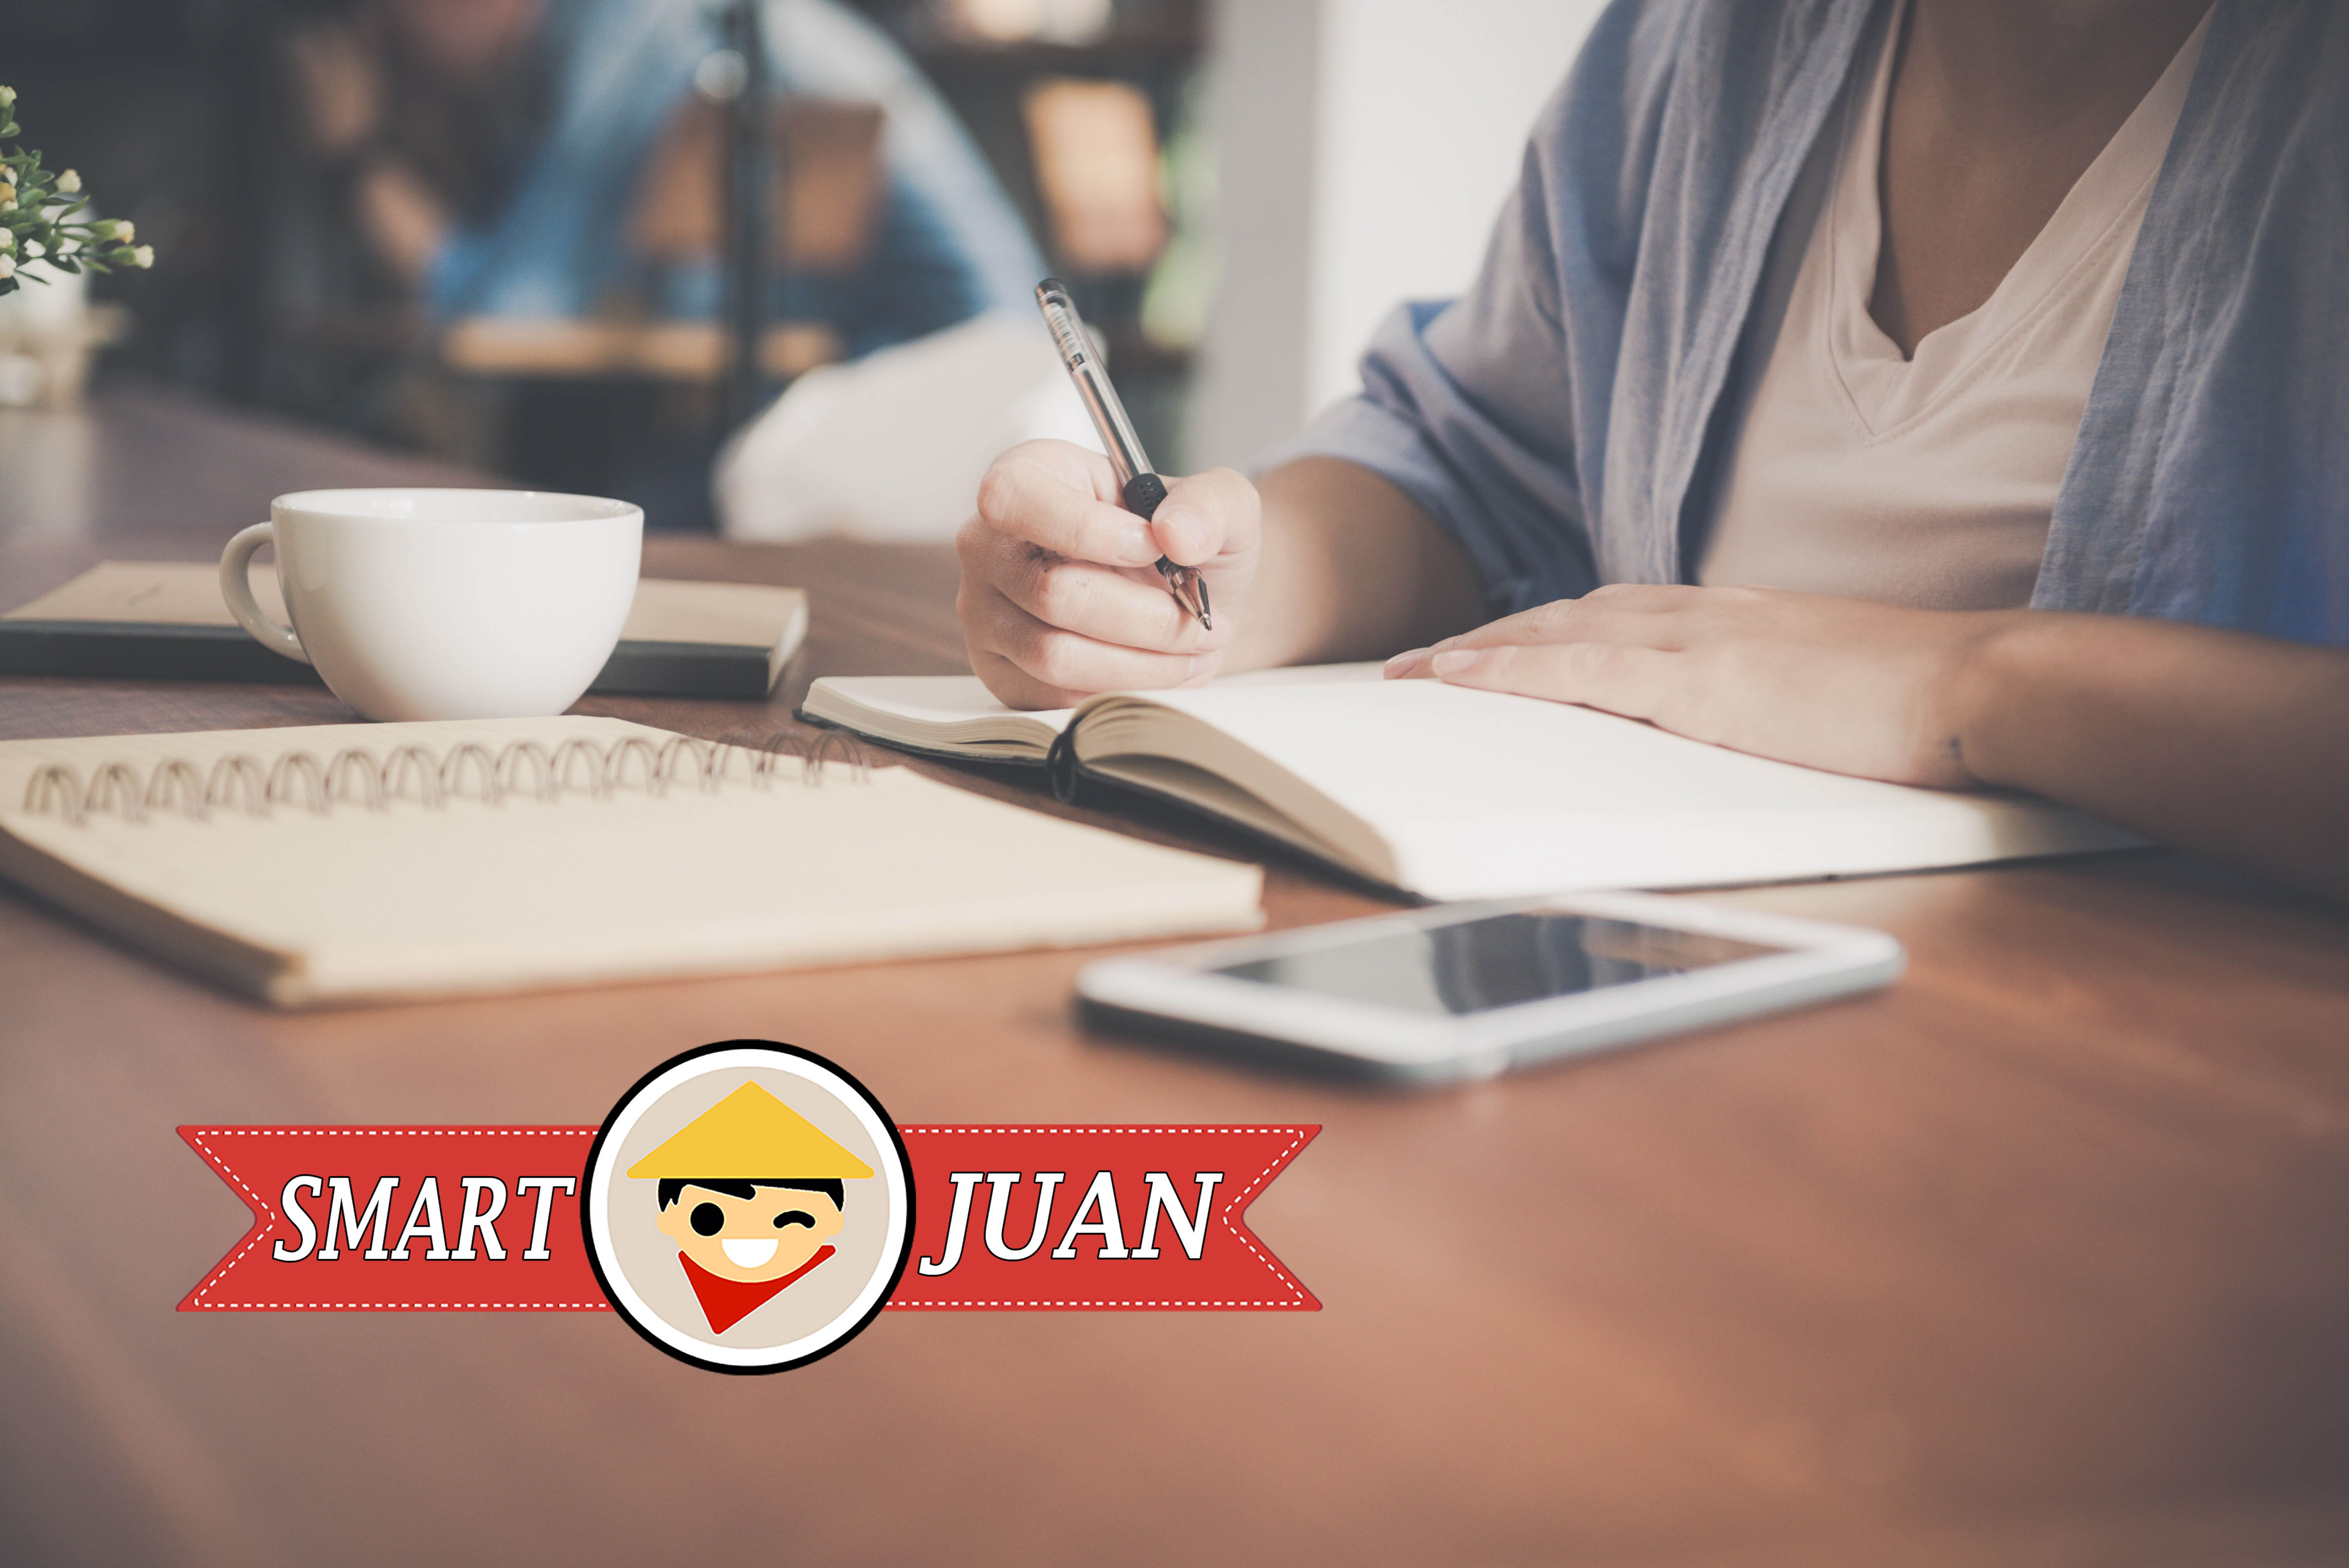 12 Cool Summer Job Ideas For Filipino Students in 2018